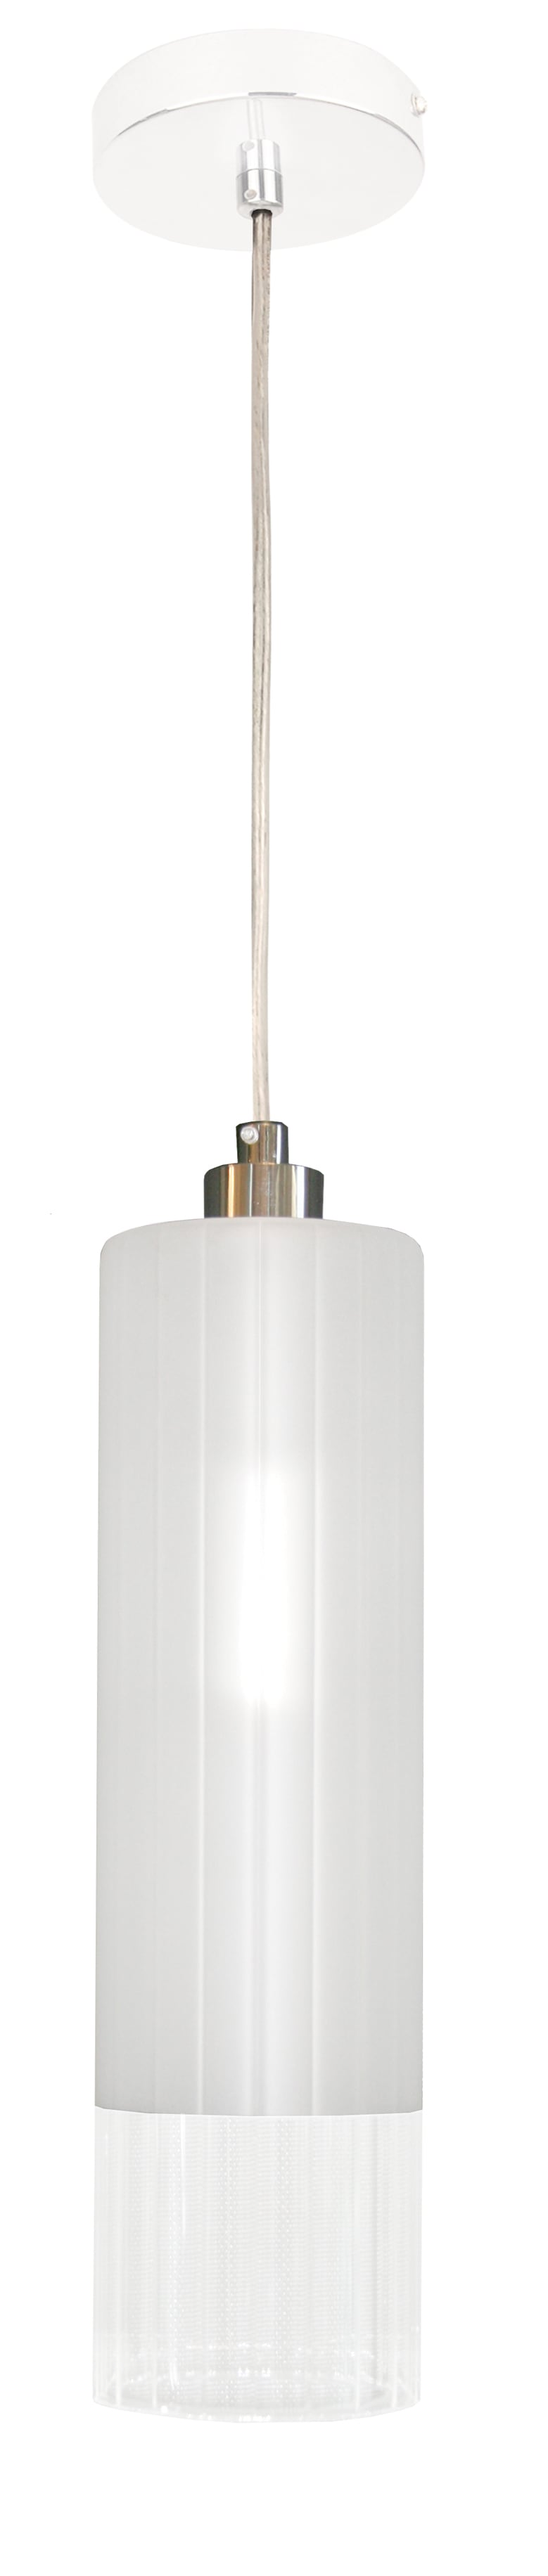 Hanging lamp Soller 1 Single Narrow tuba Jasna